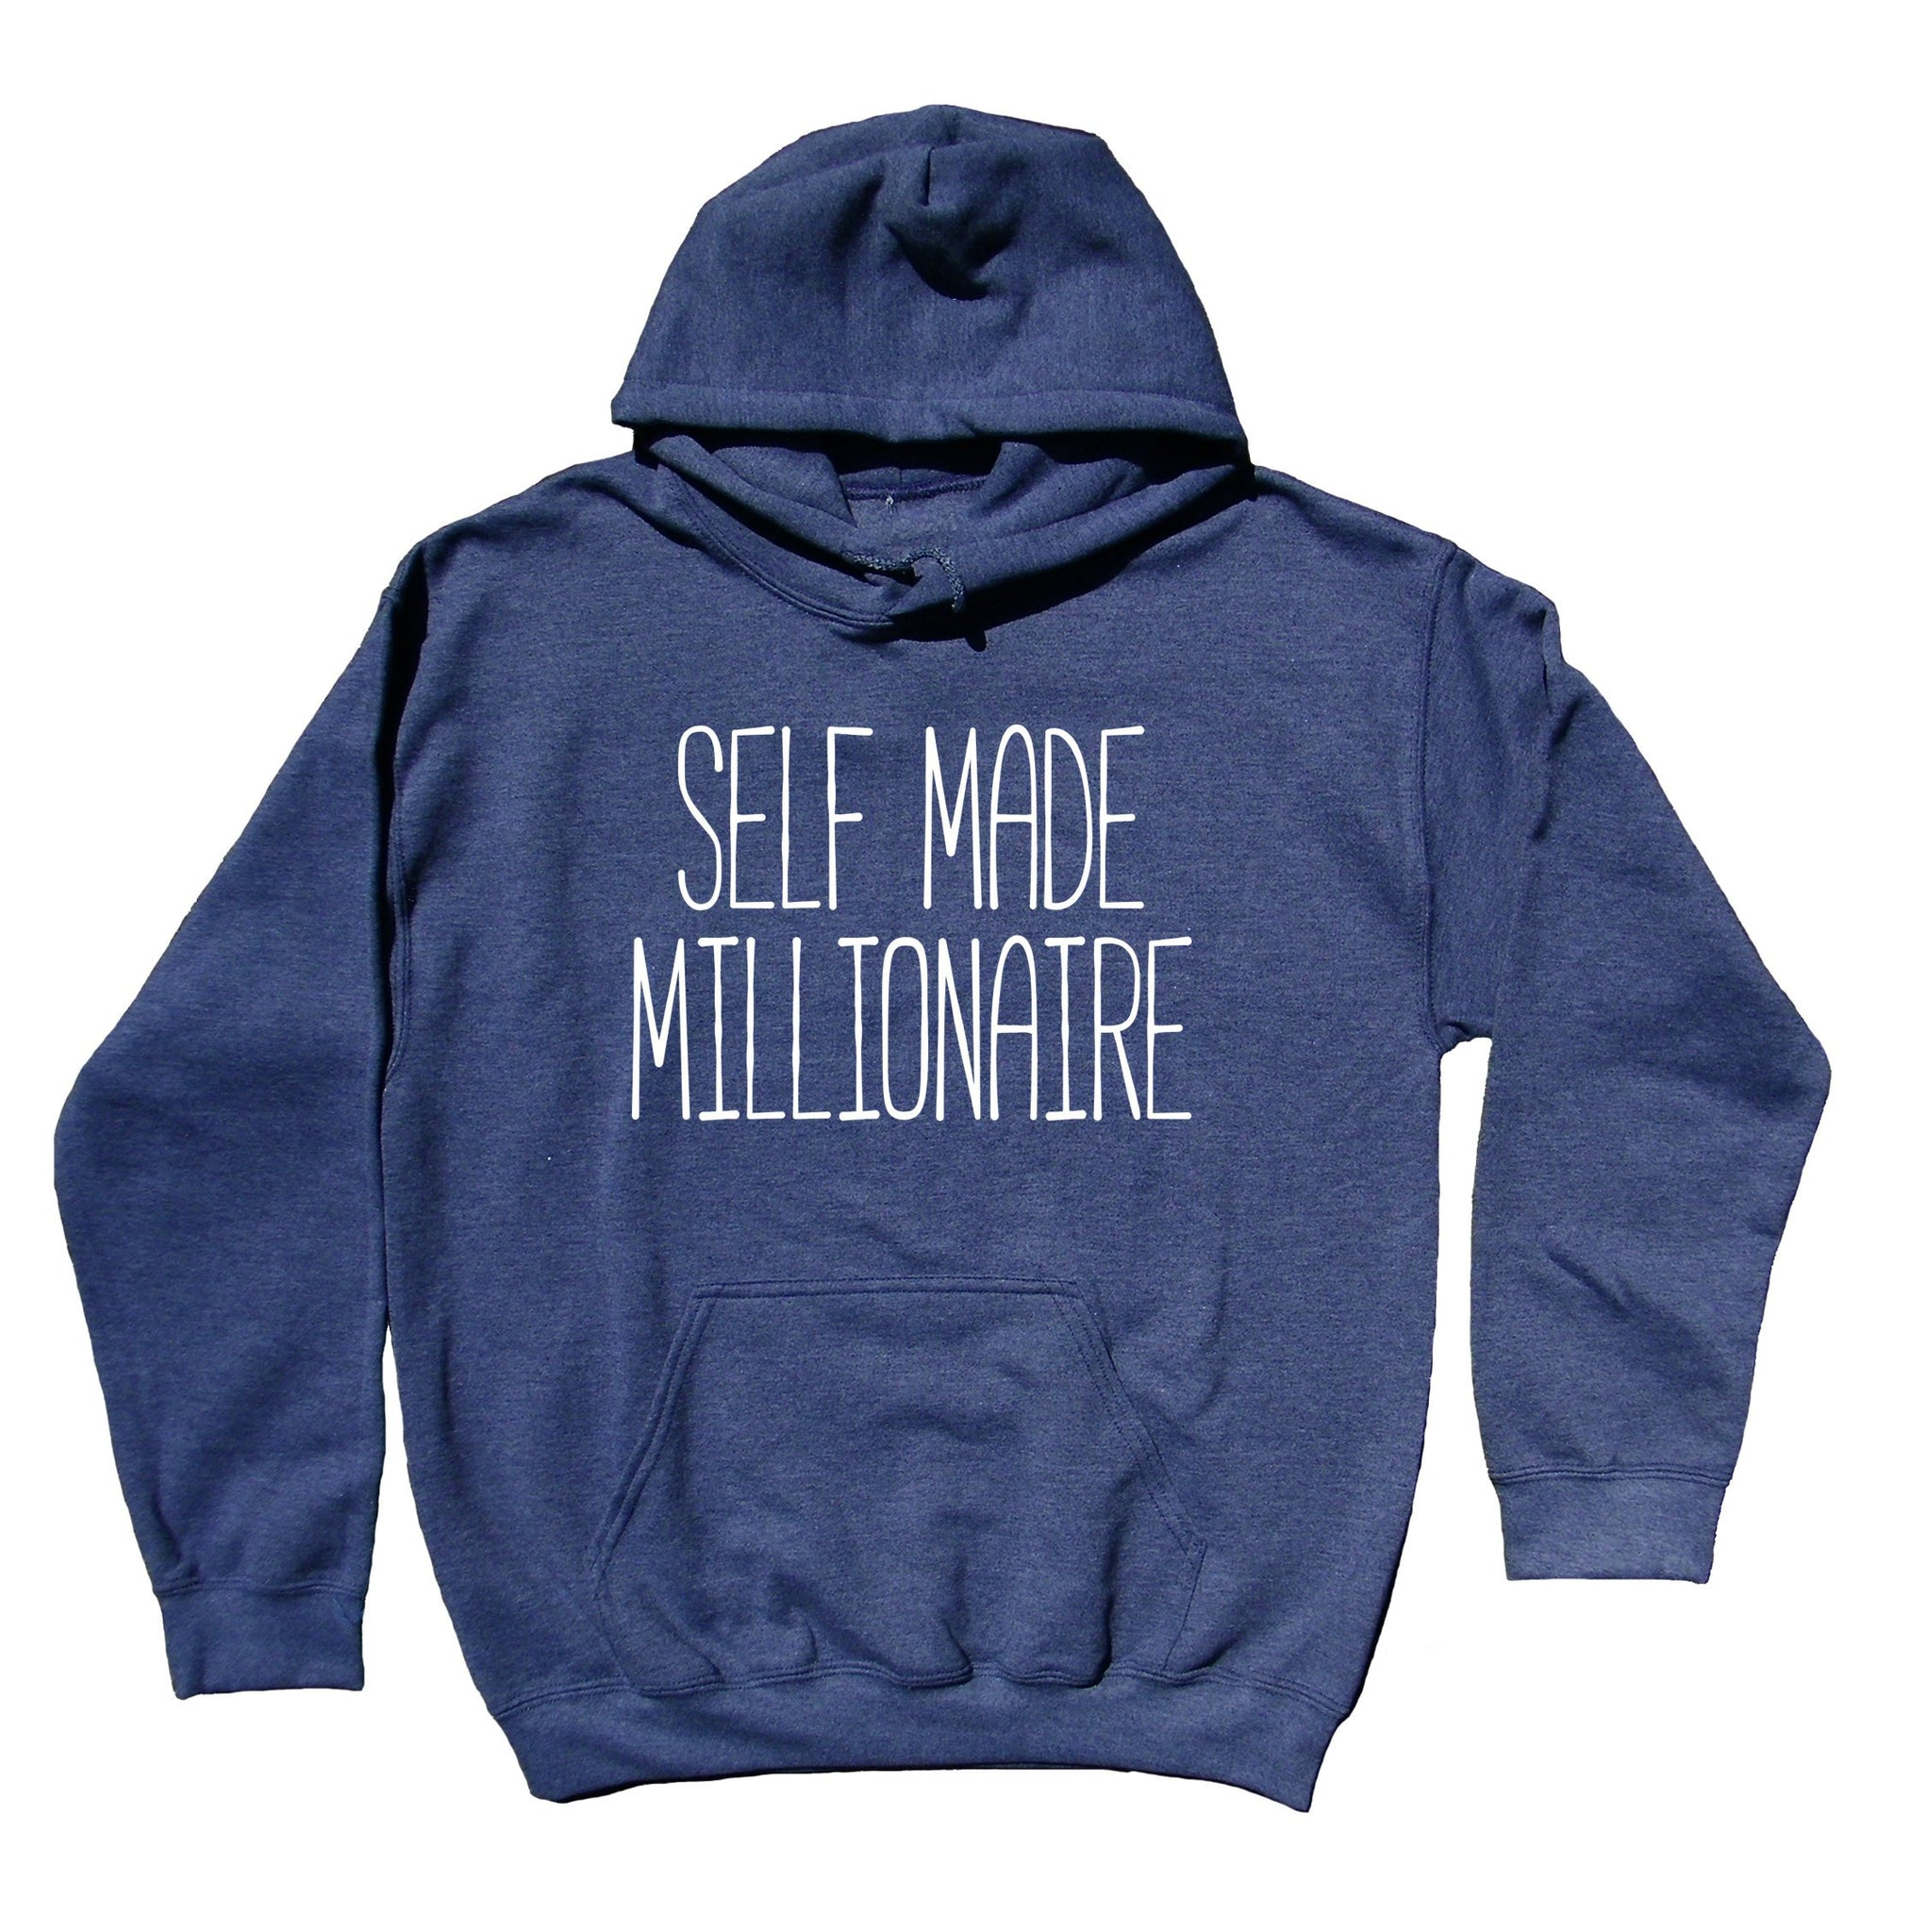 9a996bbba ... Self Made Millionaire Sweatshirt Entrepreneur Girl Boss Clothing  Statement Hoodie